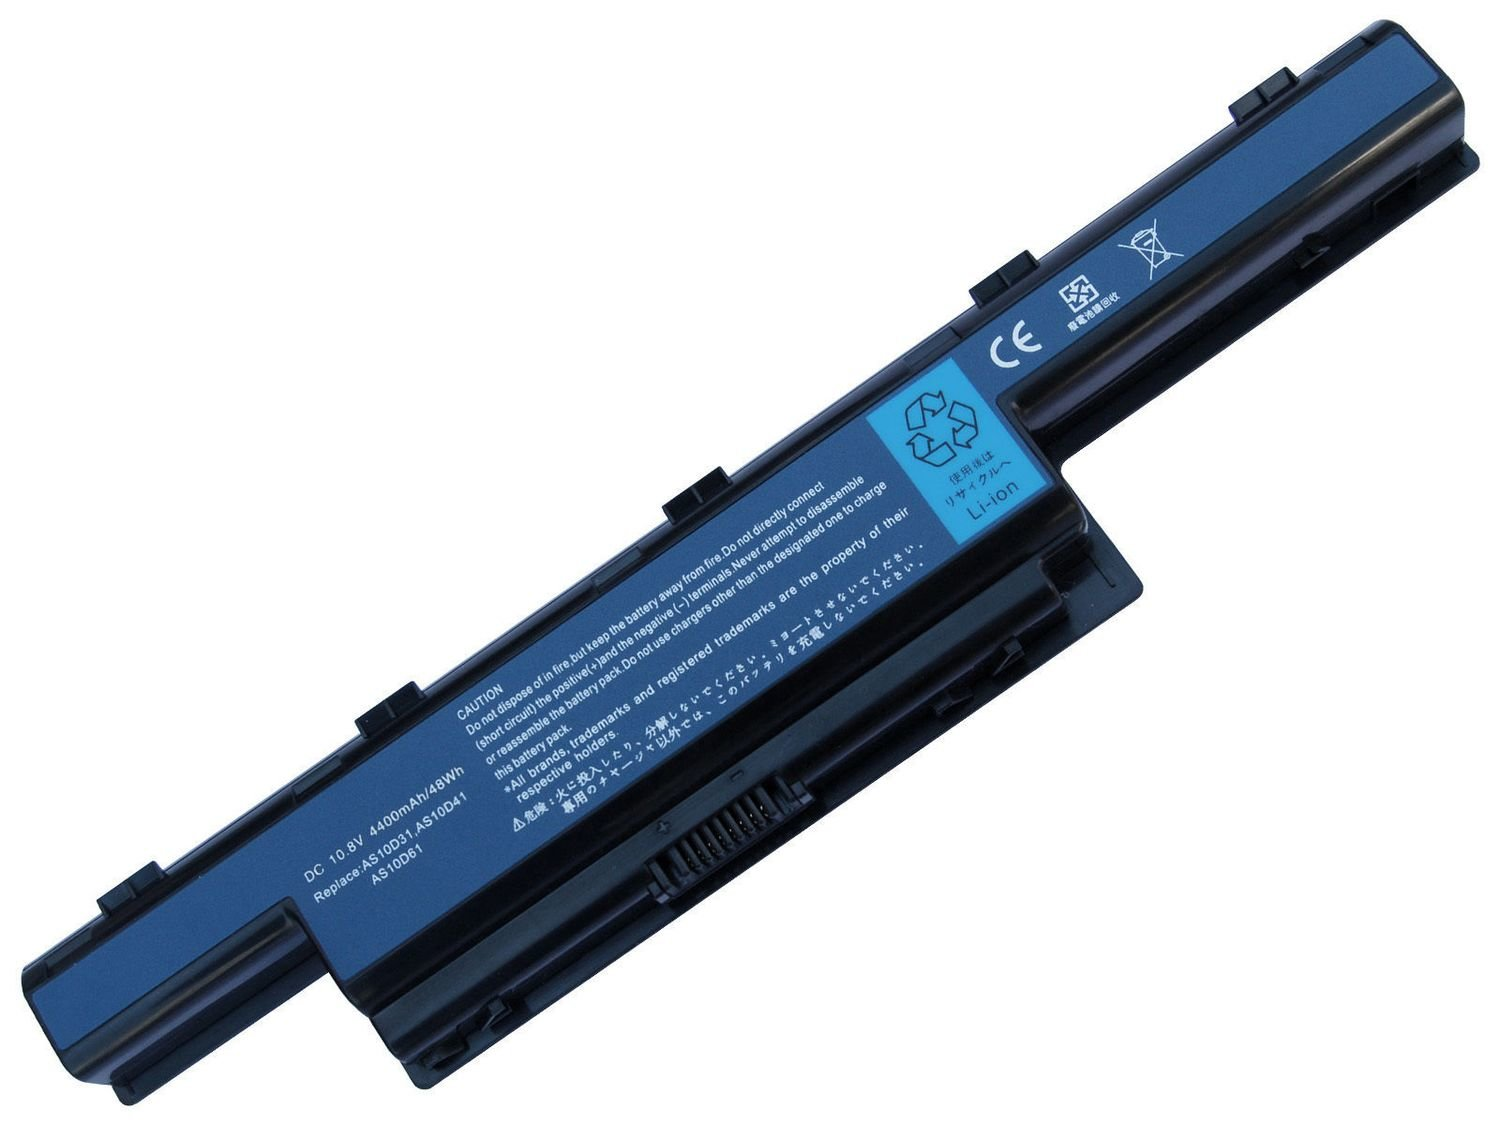 Acer Aspire Travelmate 31CR19/652 AS10G3E 31CR19/65-2 compatible laptop battery